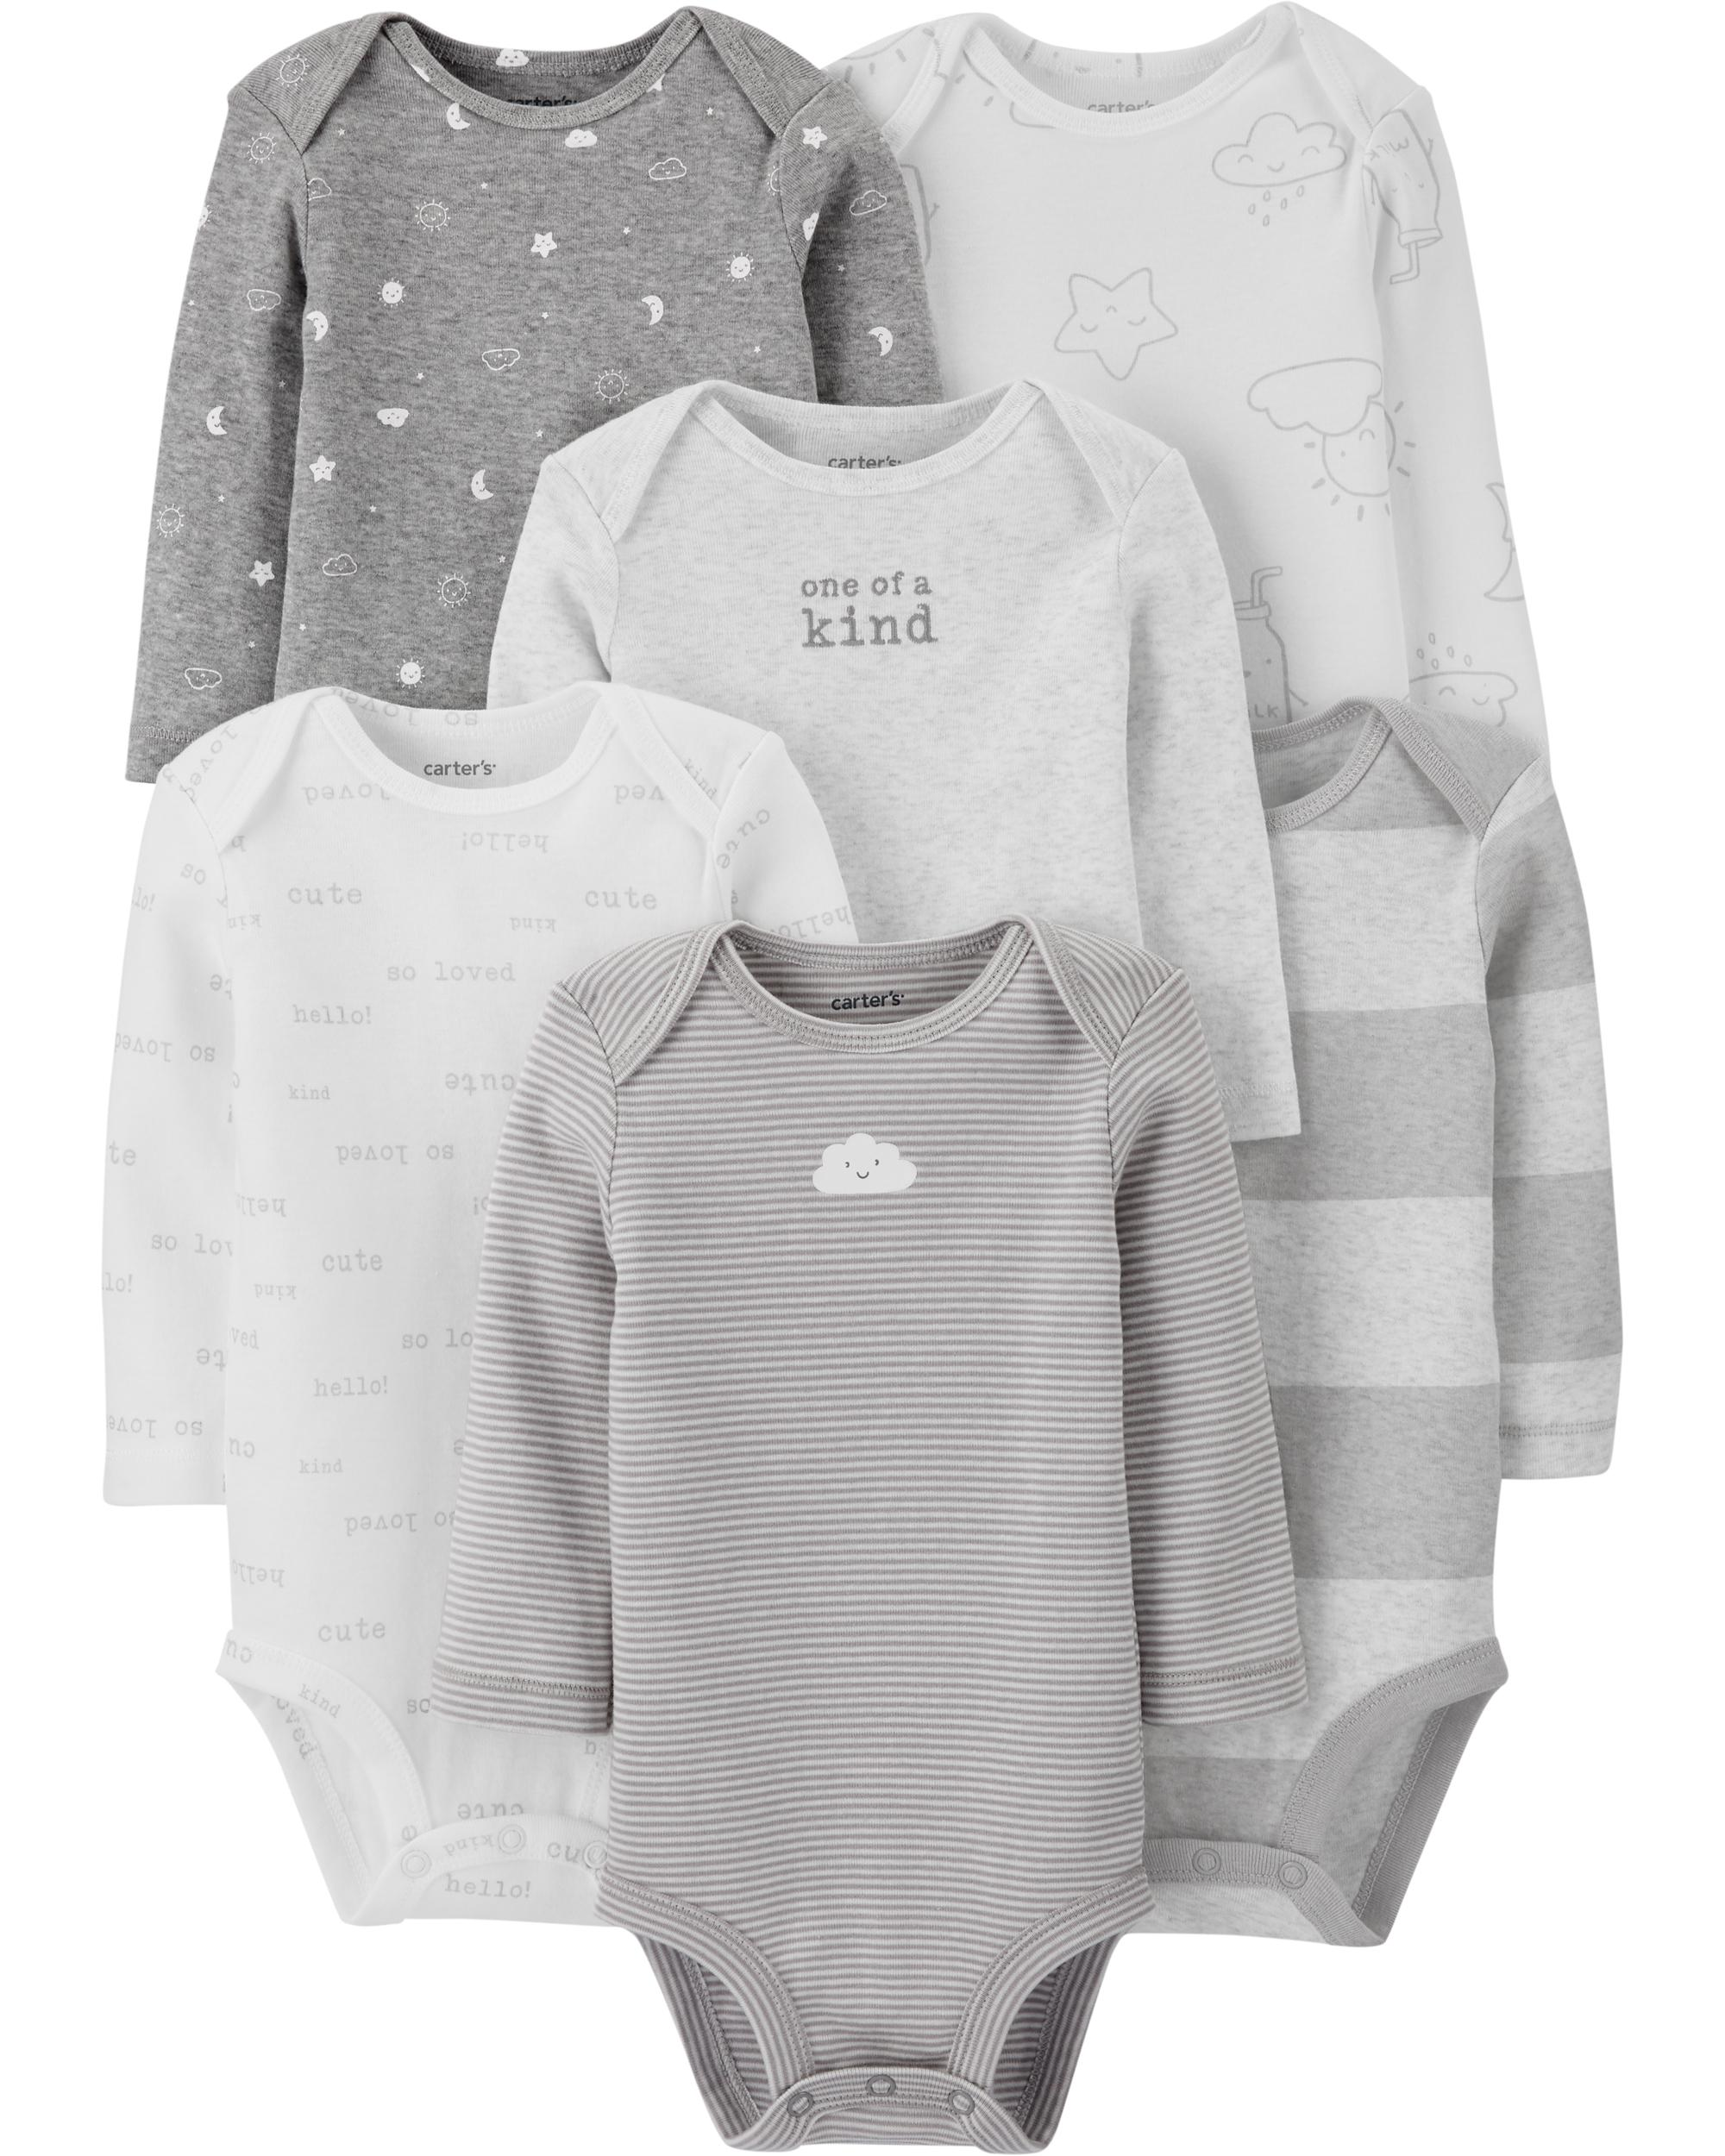 Carter's 6-Pack Original Bodysuits, best baby Christmas gifts